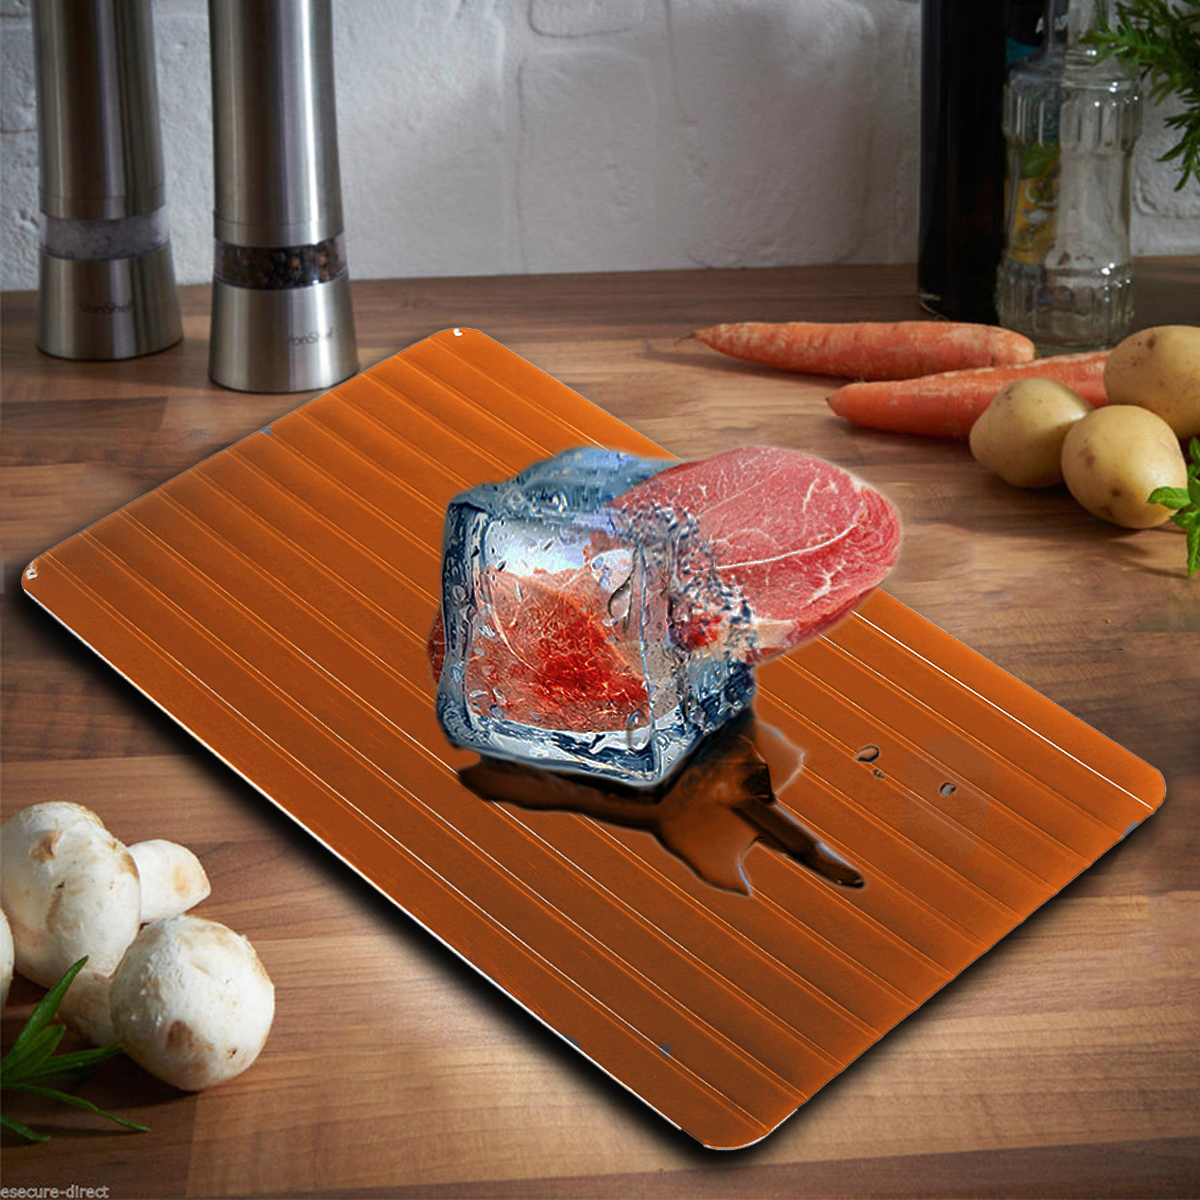 23.5x16.5x0.2cm Fast Defrost Defrosting Tray Aluminium Meat Thaw Thawing Miracle For Frozen Food